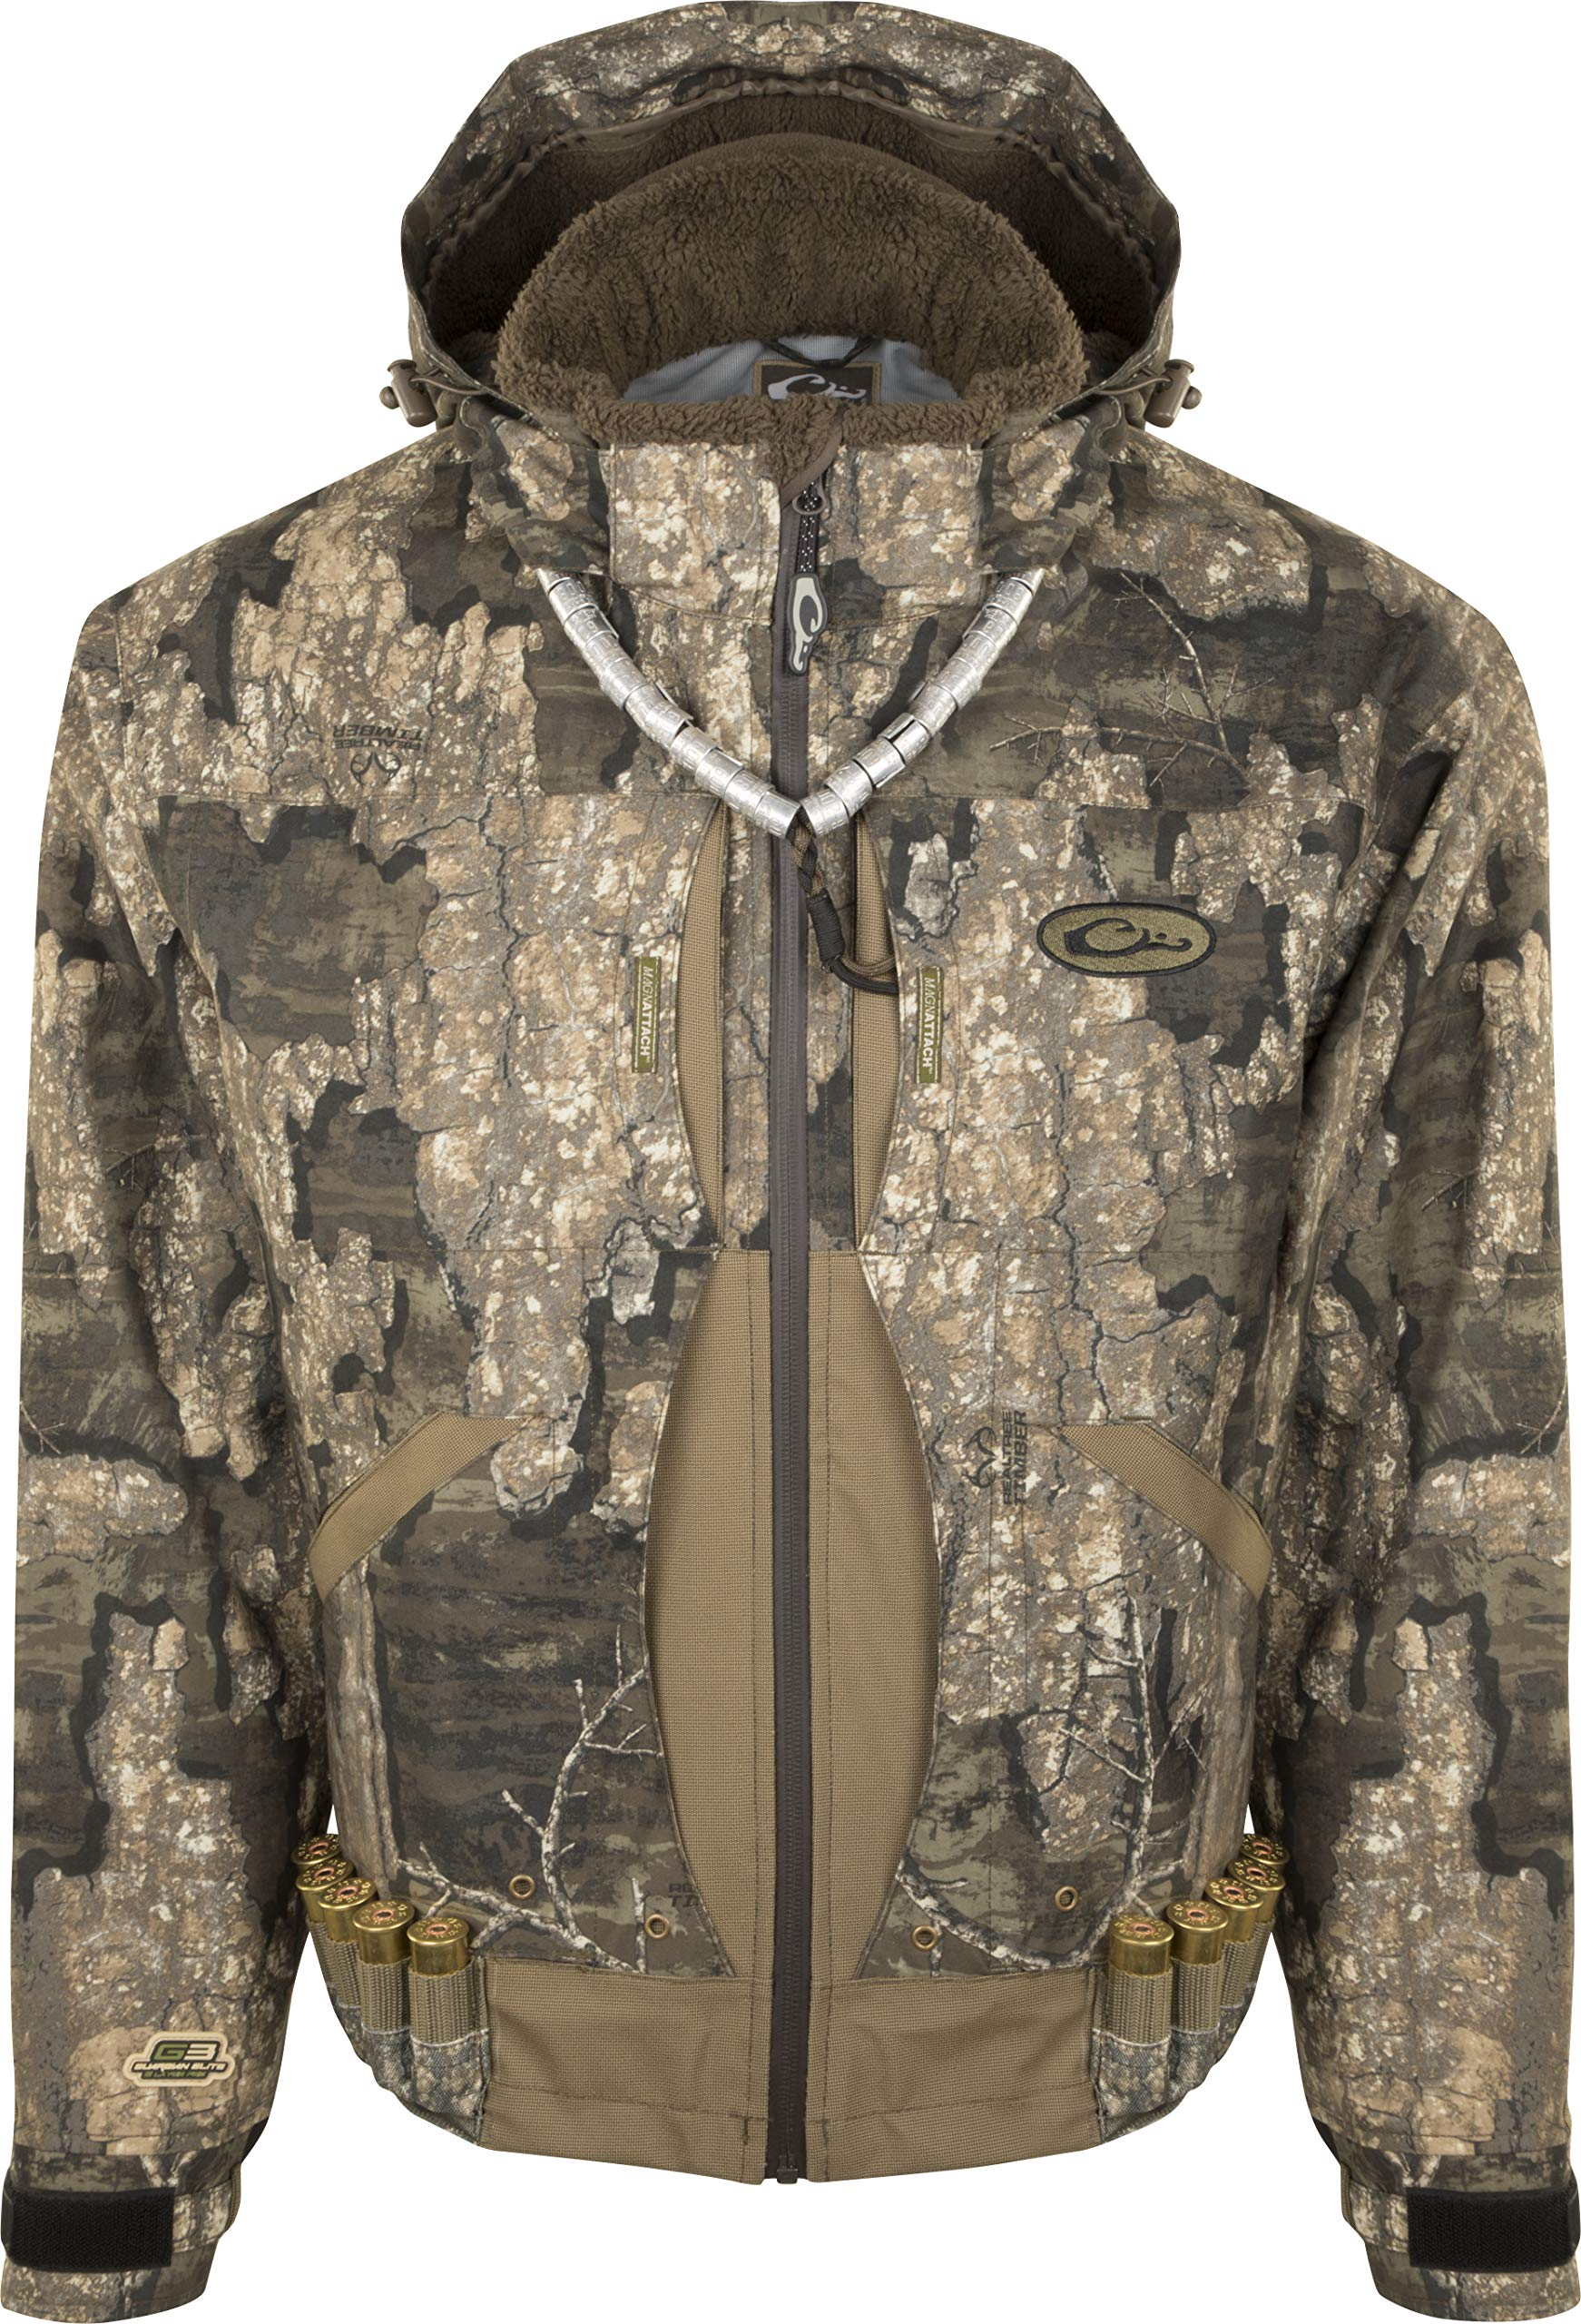 Drake Guardian Elite Flooded Timber Jacket - Insulated Realtree Timber SM